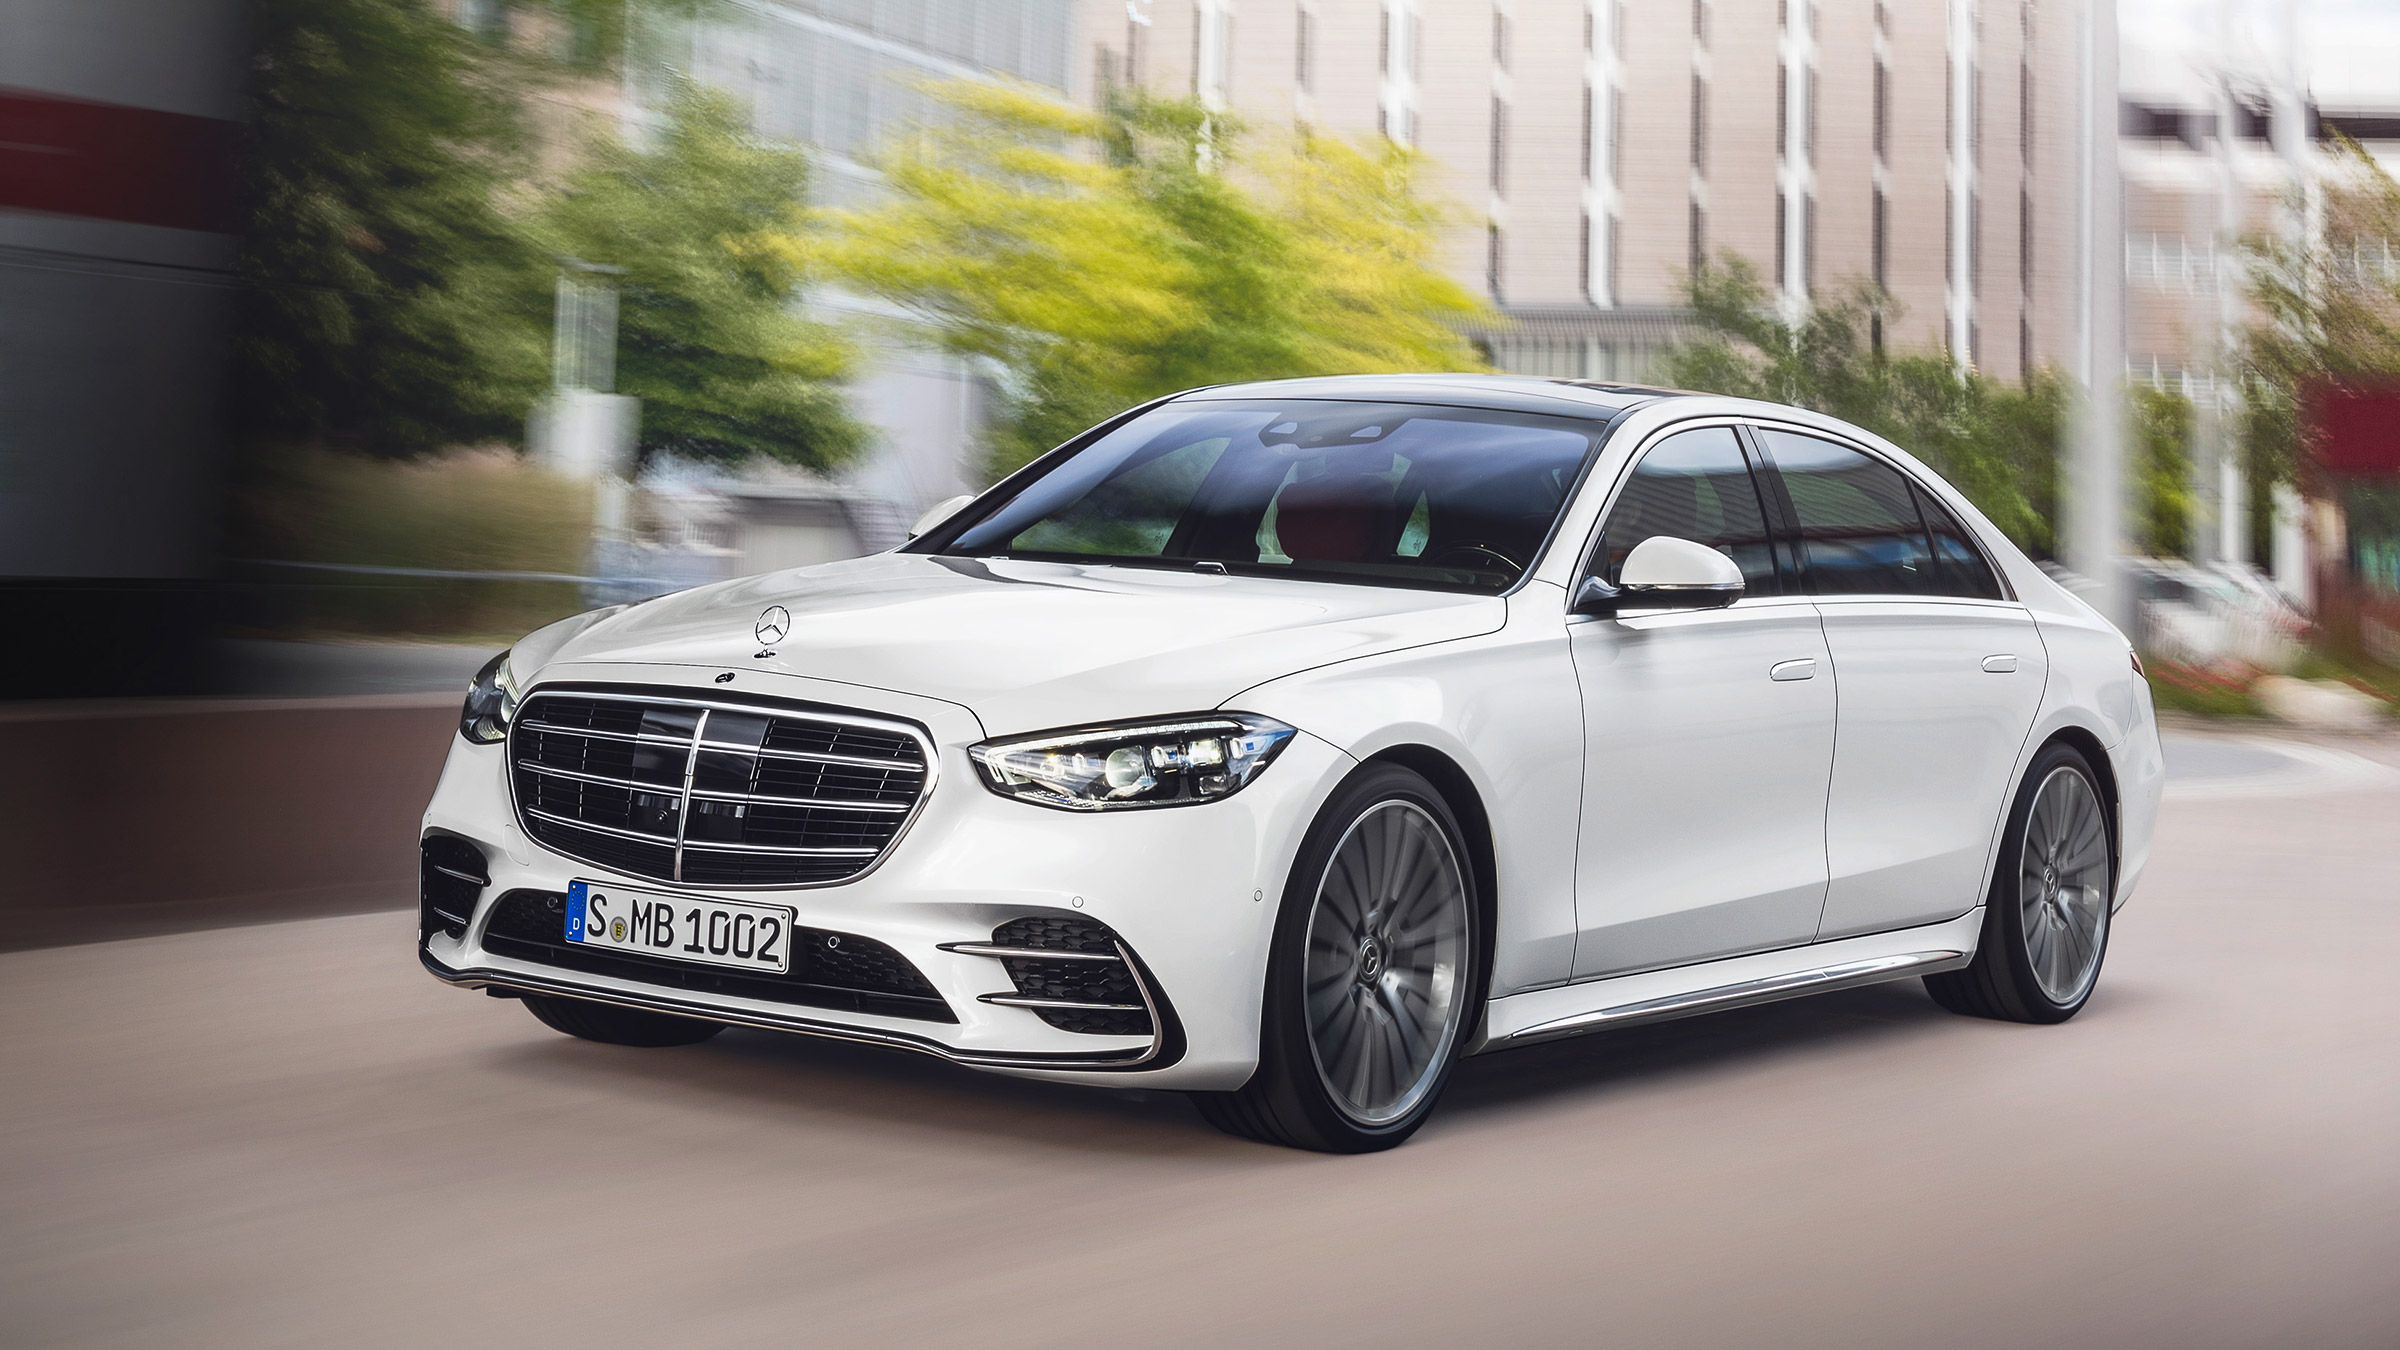 2020 Mercedes Benz S Class Priced In The Uk From 78 705 Evo